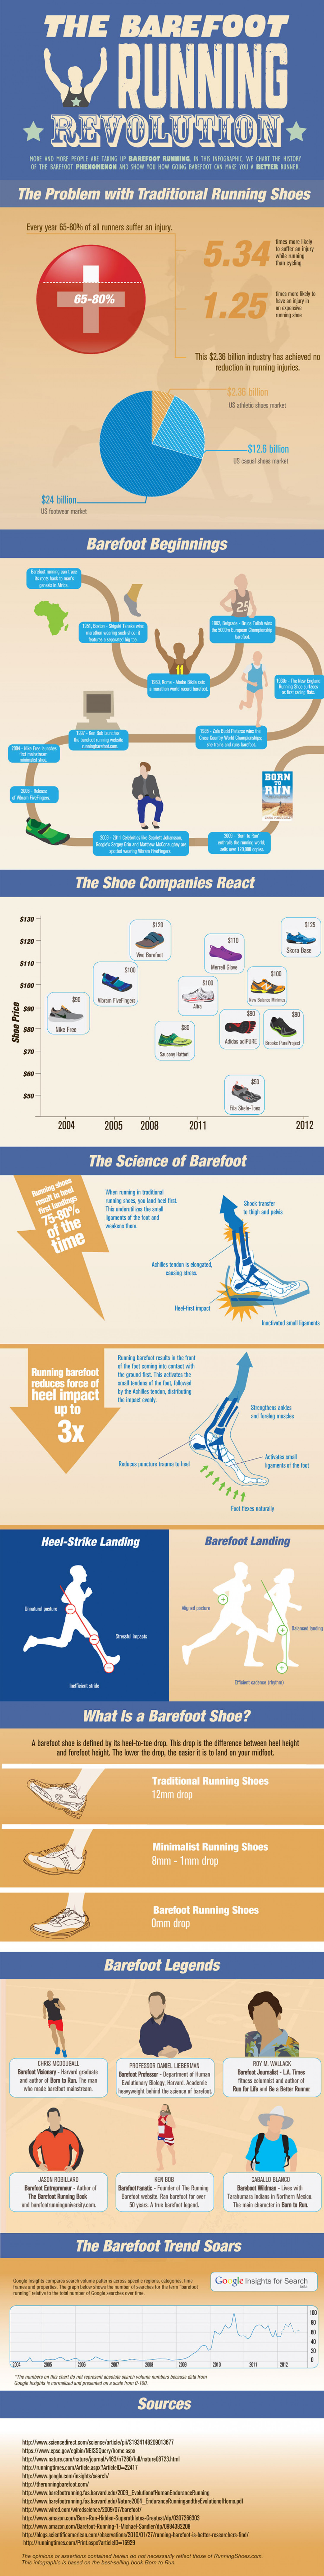 The Barefoot Running Revolution Infographic